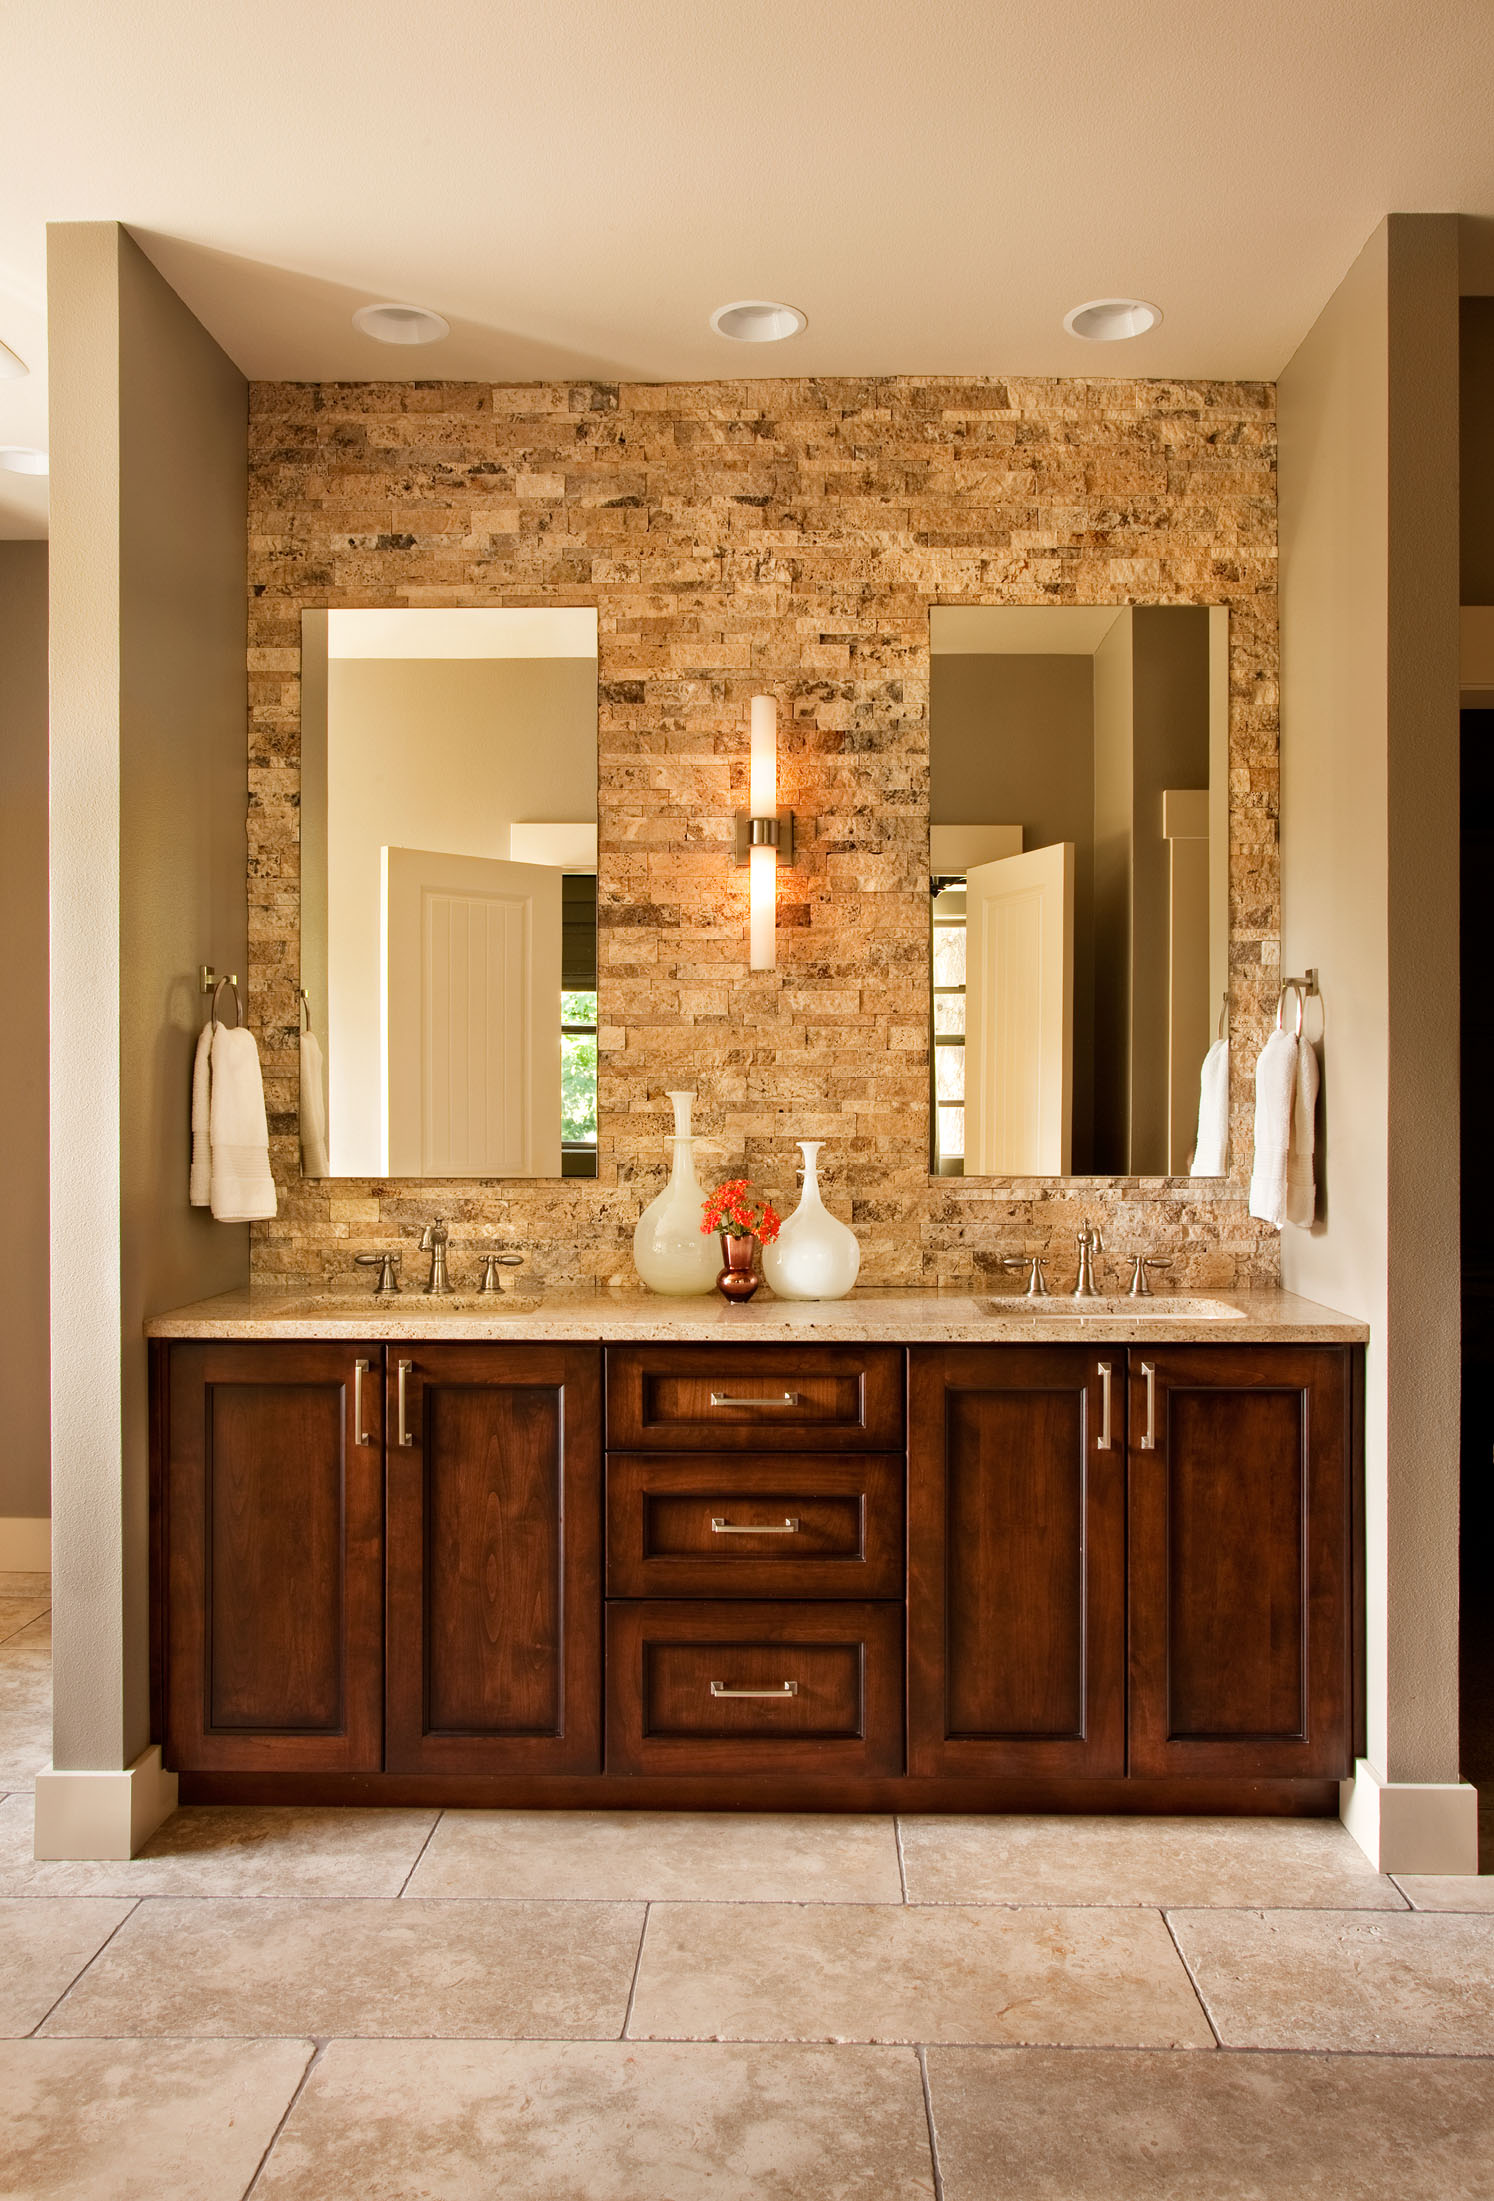 30 nice ideas and pictures of natural stone bathroom wall ...